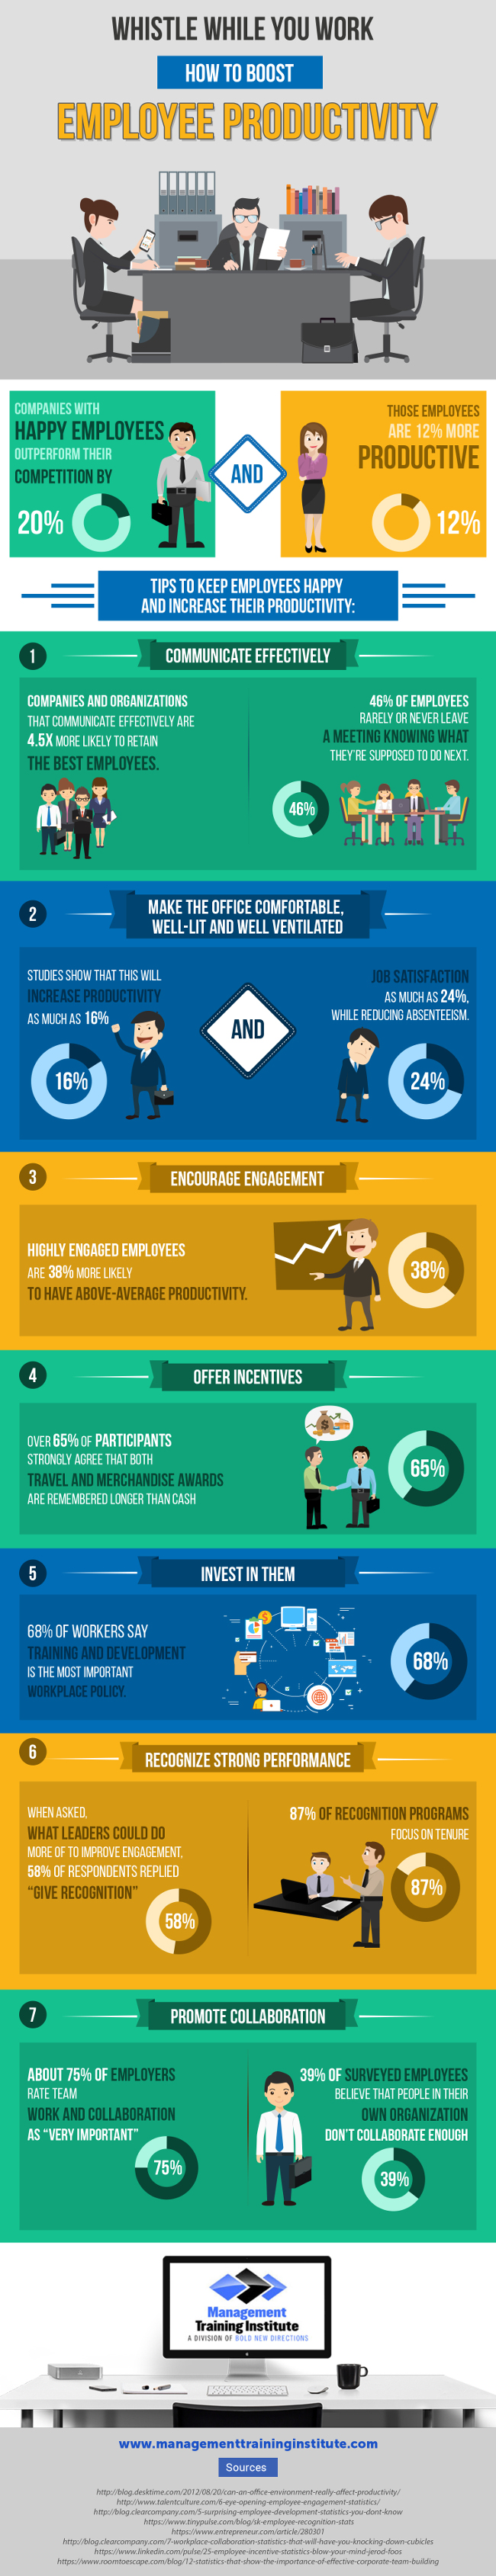 How to Boost Employee Productivity [Infographic]